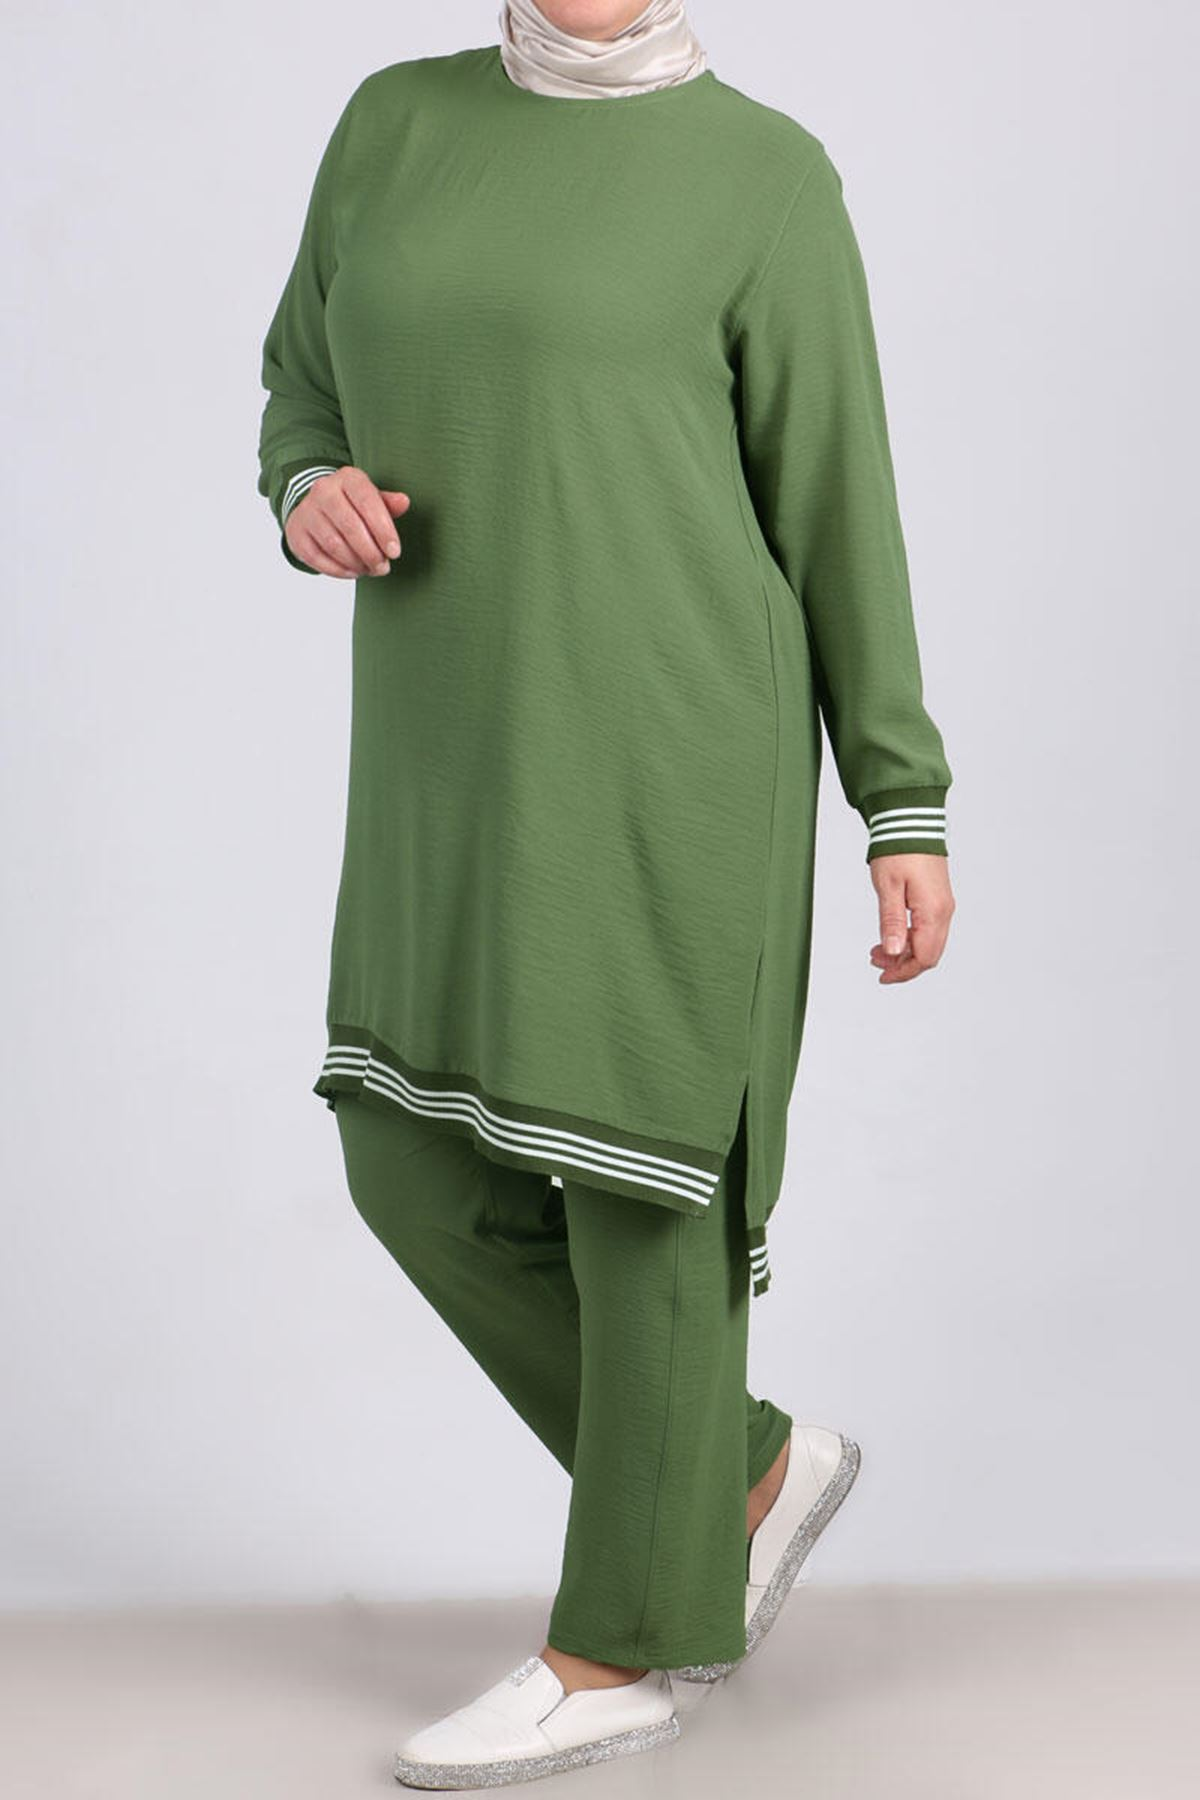 7671 Plus Size Ribbed Two Piece Set with Tunic and Pants- Khaki